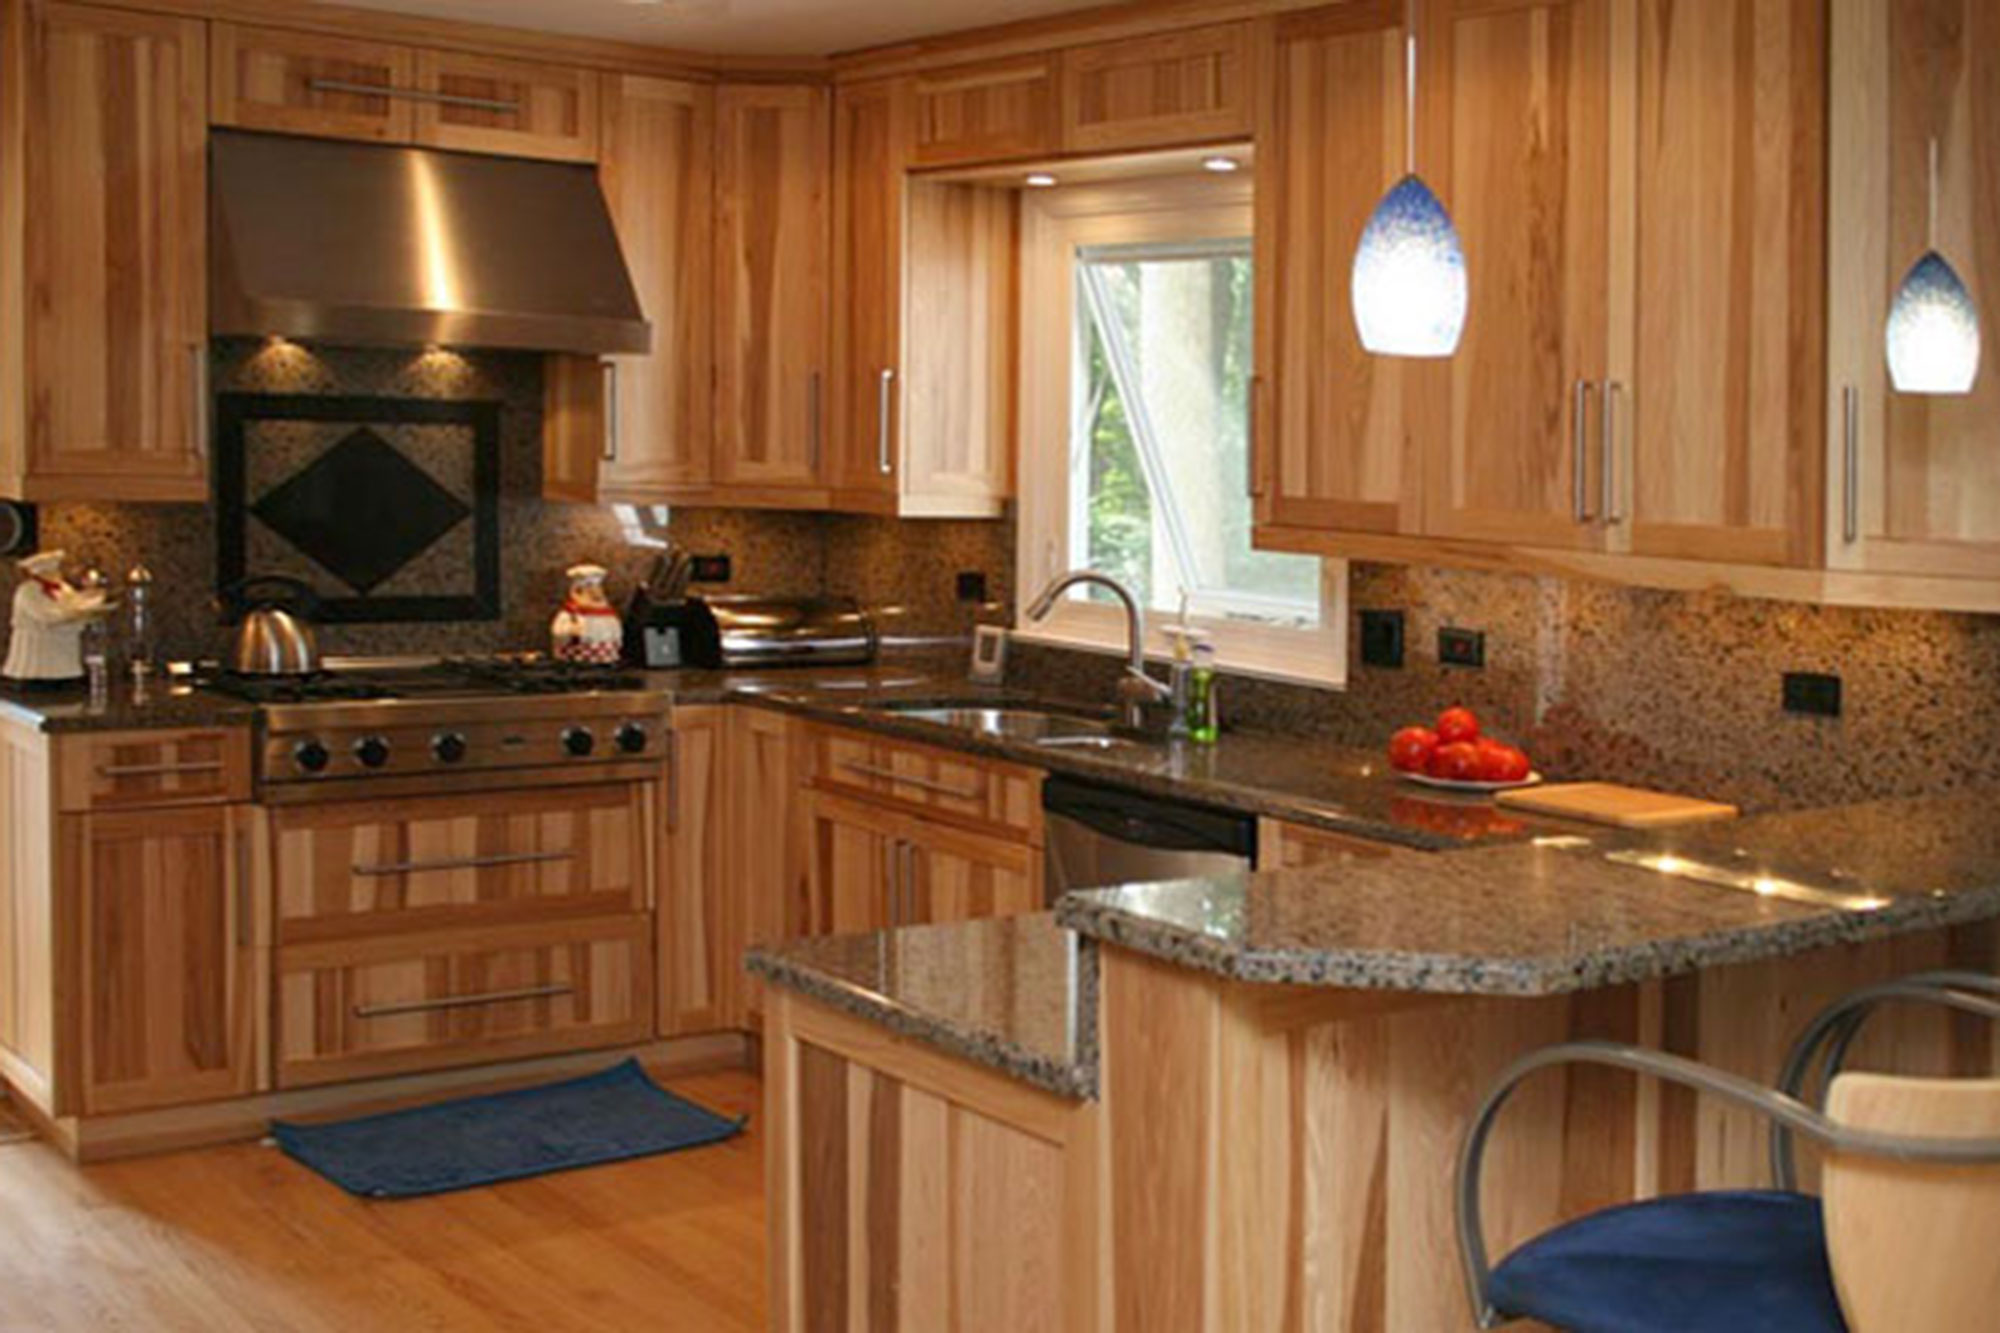 Bathroom Kitchen Cabinets Hickory Cabinets Kitchen And Bath Kitchen Cabinets